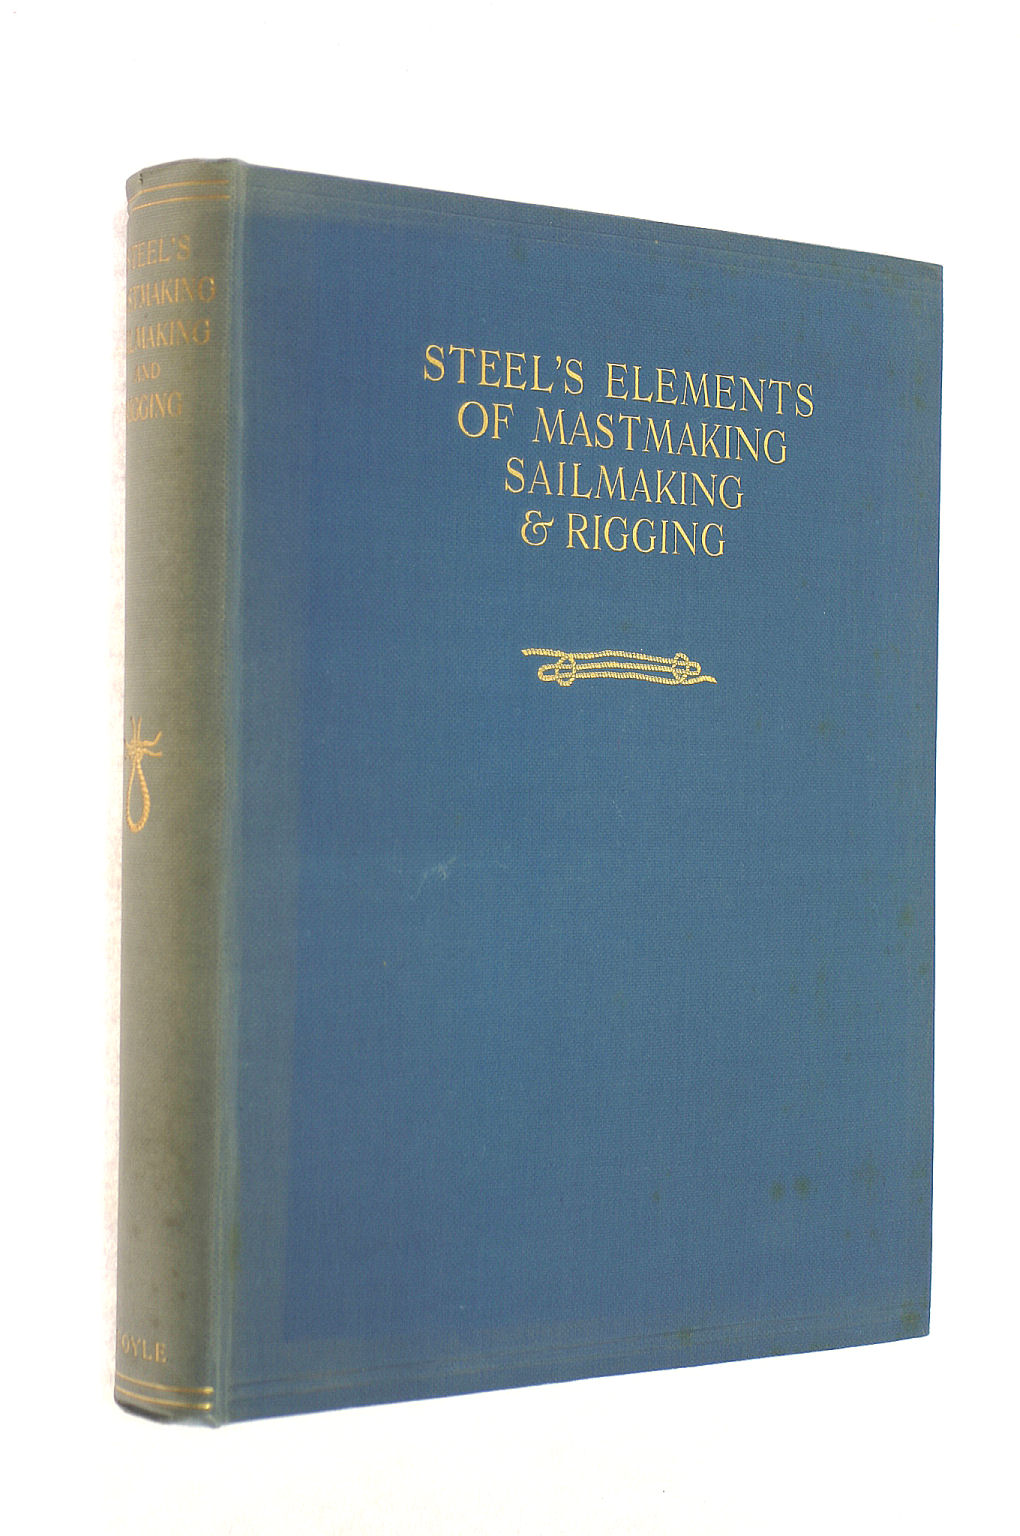 Image for Steel's Elements Of Mastmaking, Sailmaking And Rigging.